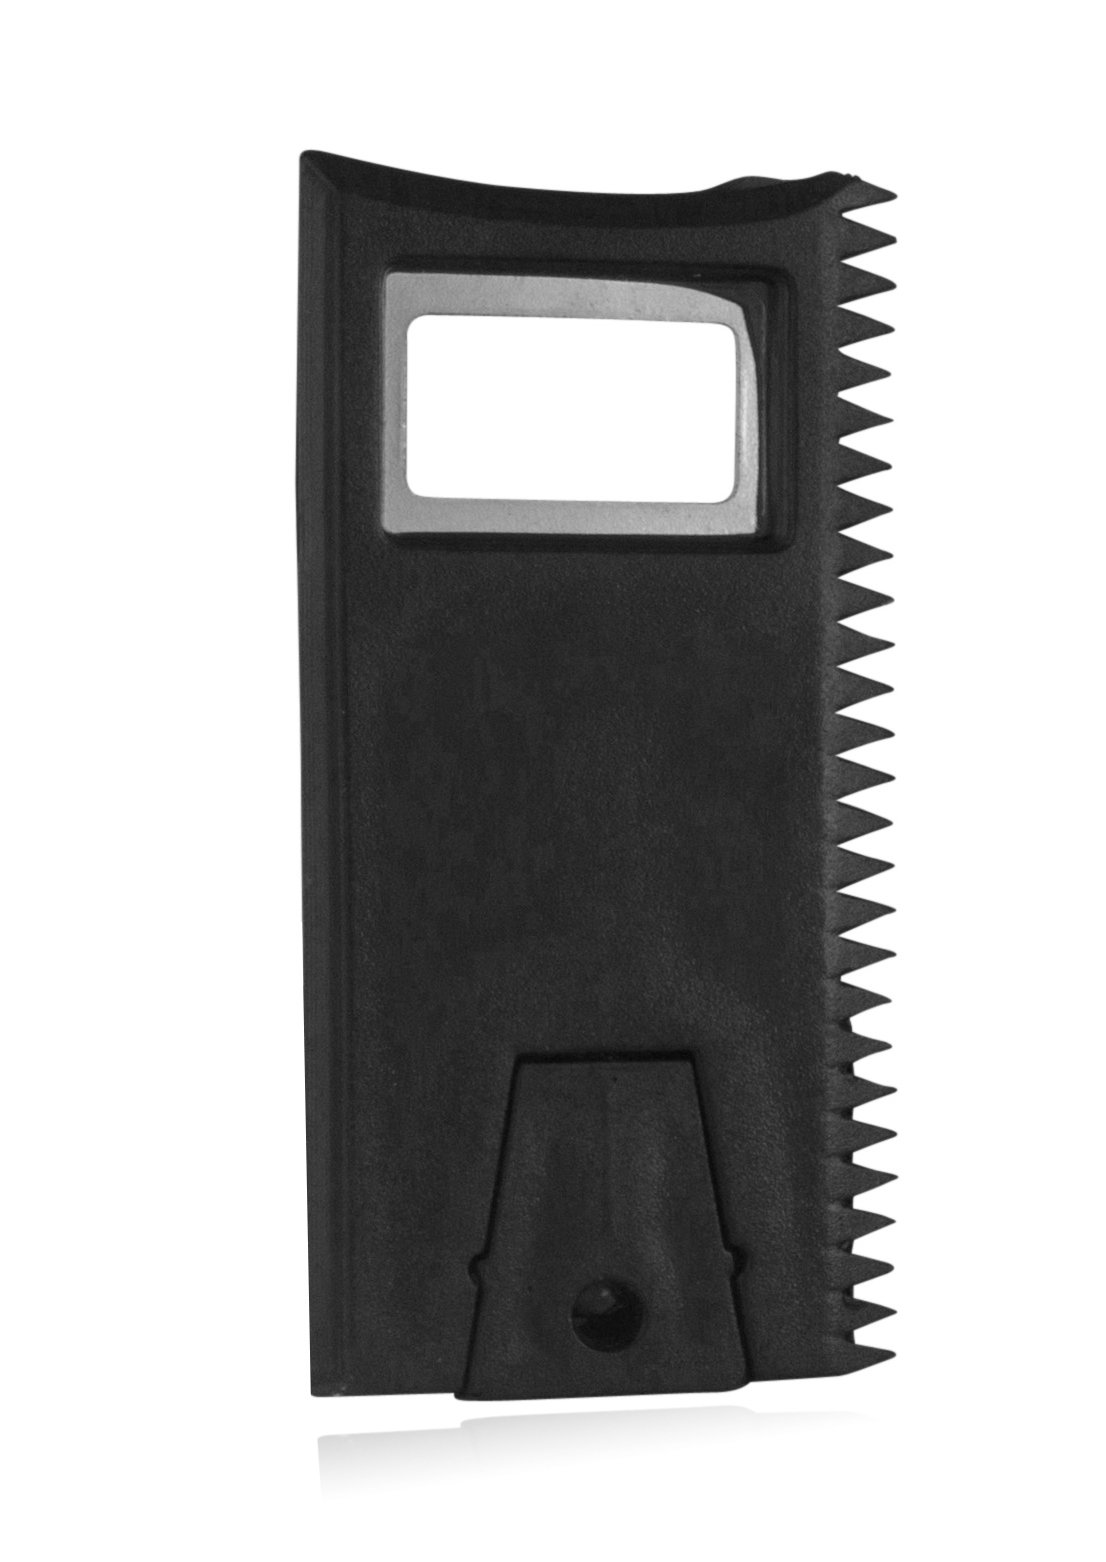 Surf Wax Comb & Scraper to Remove Unwanted Wax from Board and Restore Shine; Easy to Hold and Includes Built in Bottle…